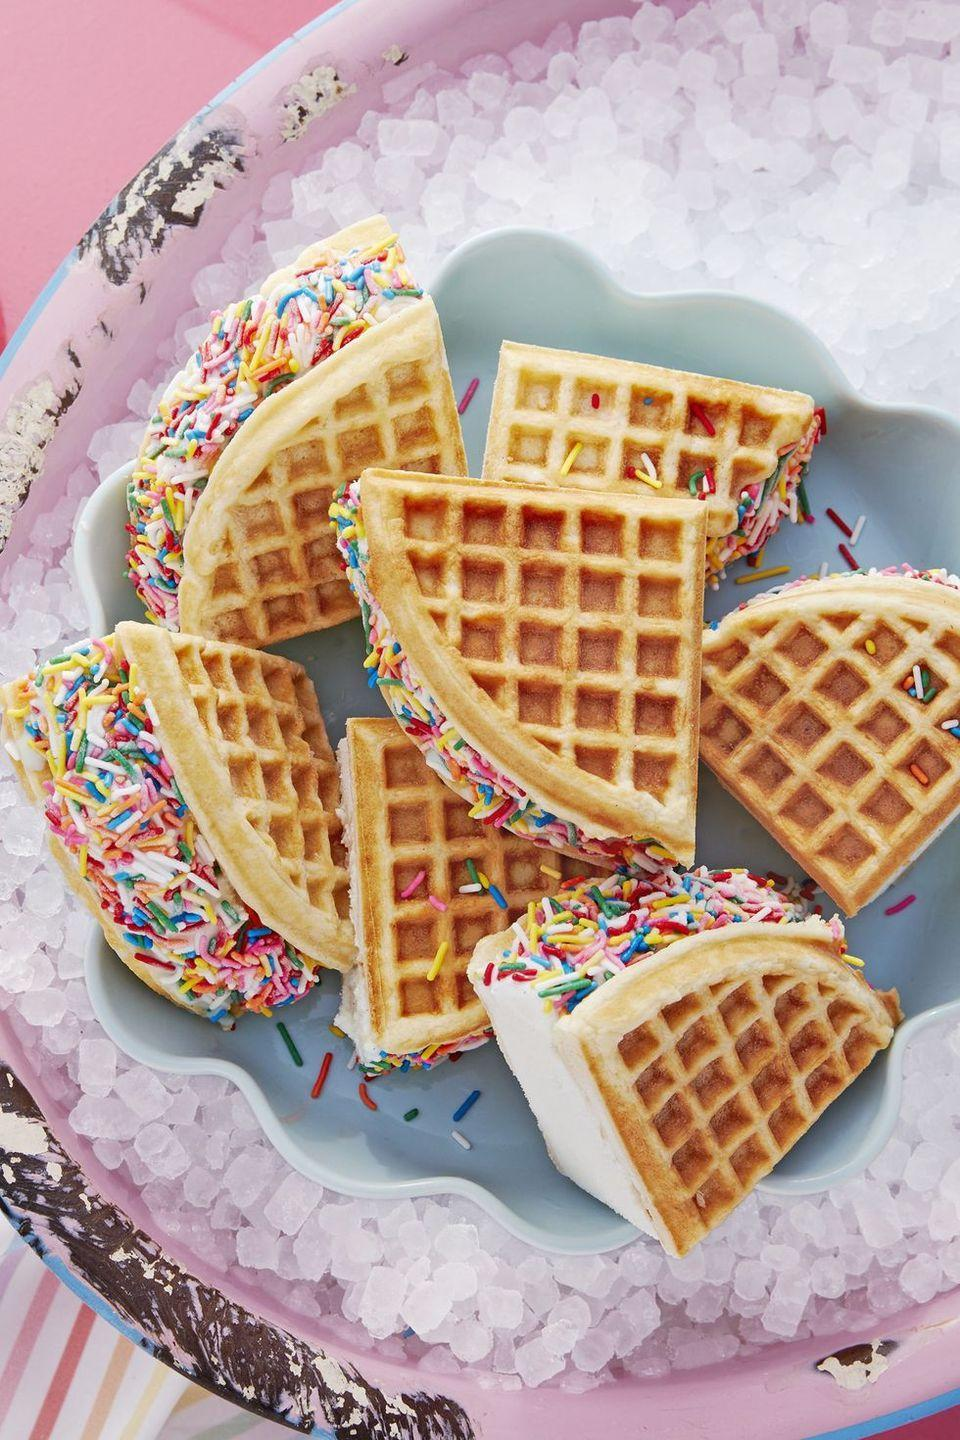 """<p>These colorful waffle sandwiches will be the hit of your next summer party. Who can resist a rainbow sprinkle?</p><p><em><a href=""""https://www.countryliving.com/food-drinks/a20748103/rainbow-waffle-sandwiches-recipe/"""" rel=""""nofollow noopener"""" target=""""_blank"""" data-ylk=""""slk:Get the recipe from Country Living »"""" class=""""link rapid-noclick-resp"""">Get the recipe from Country Living »</a></em></p>"""